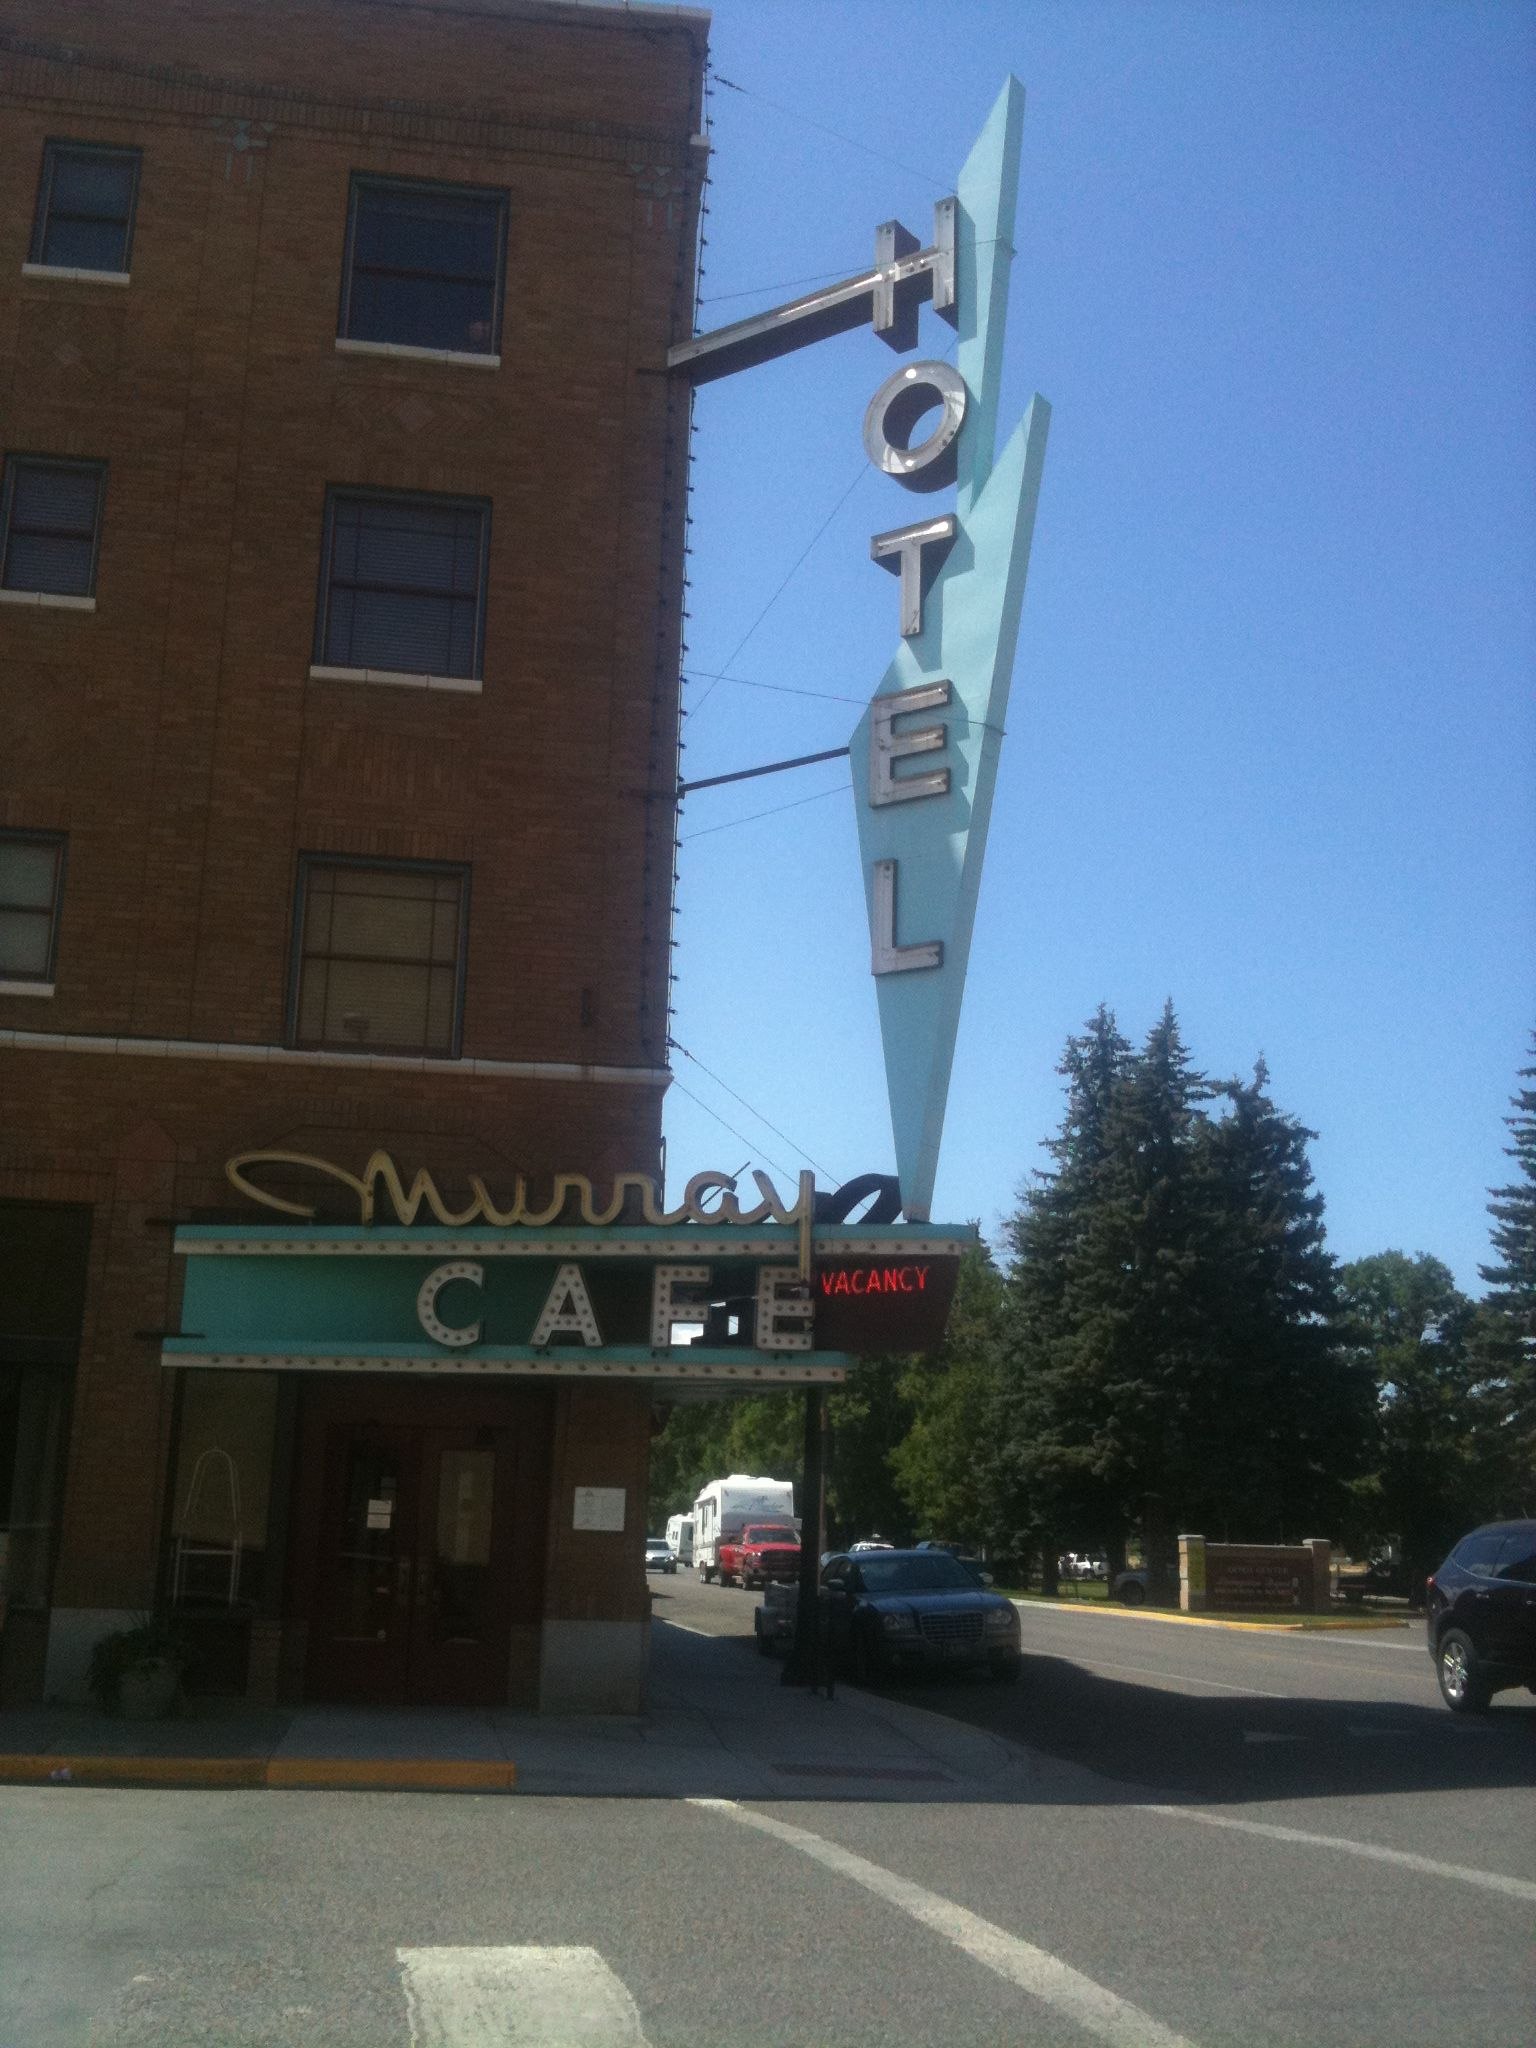 The Murray Hotel/Cafe, Livingston, MT